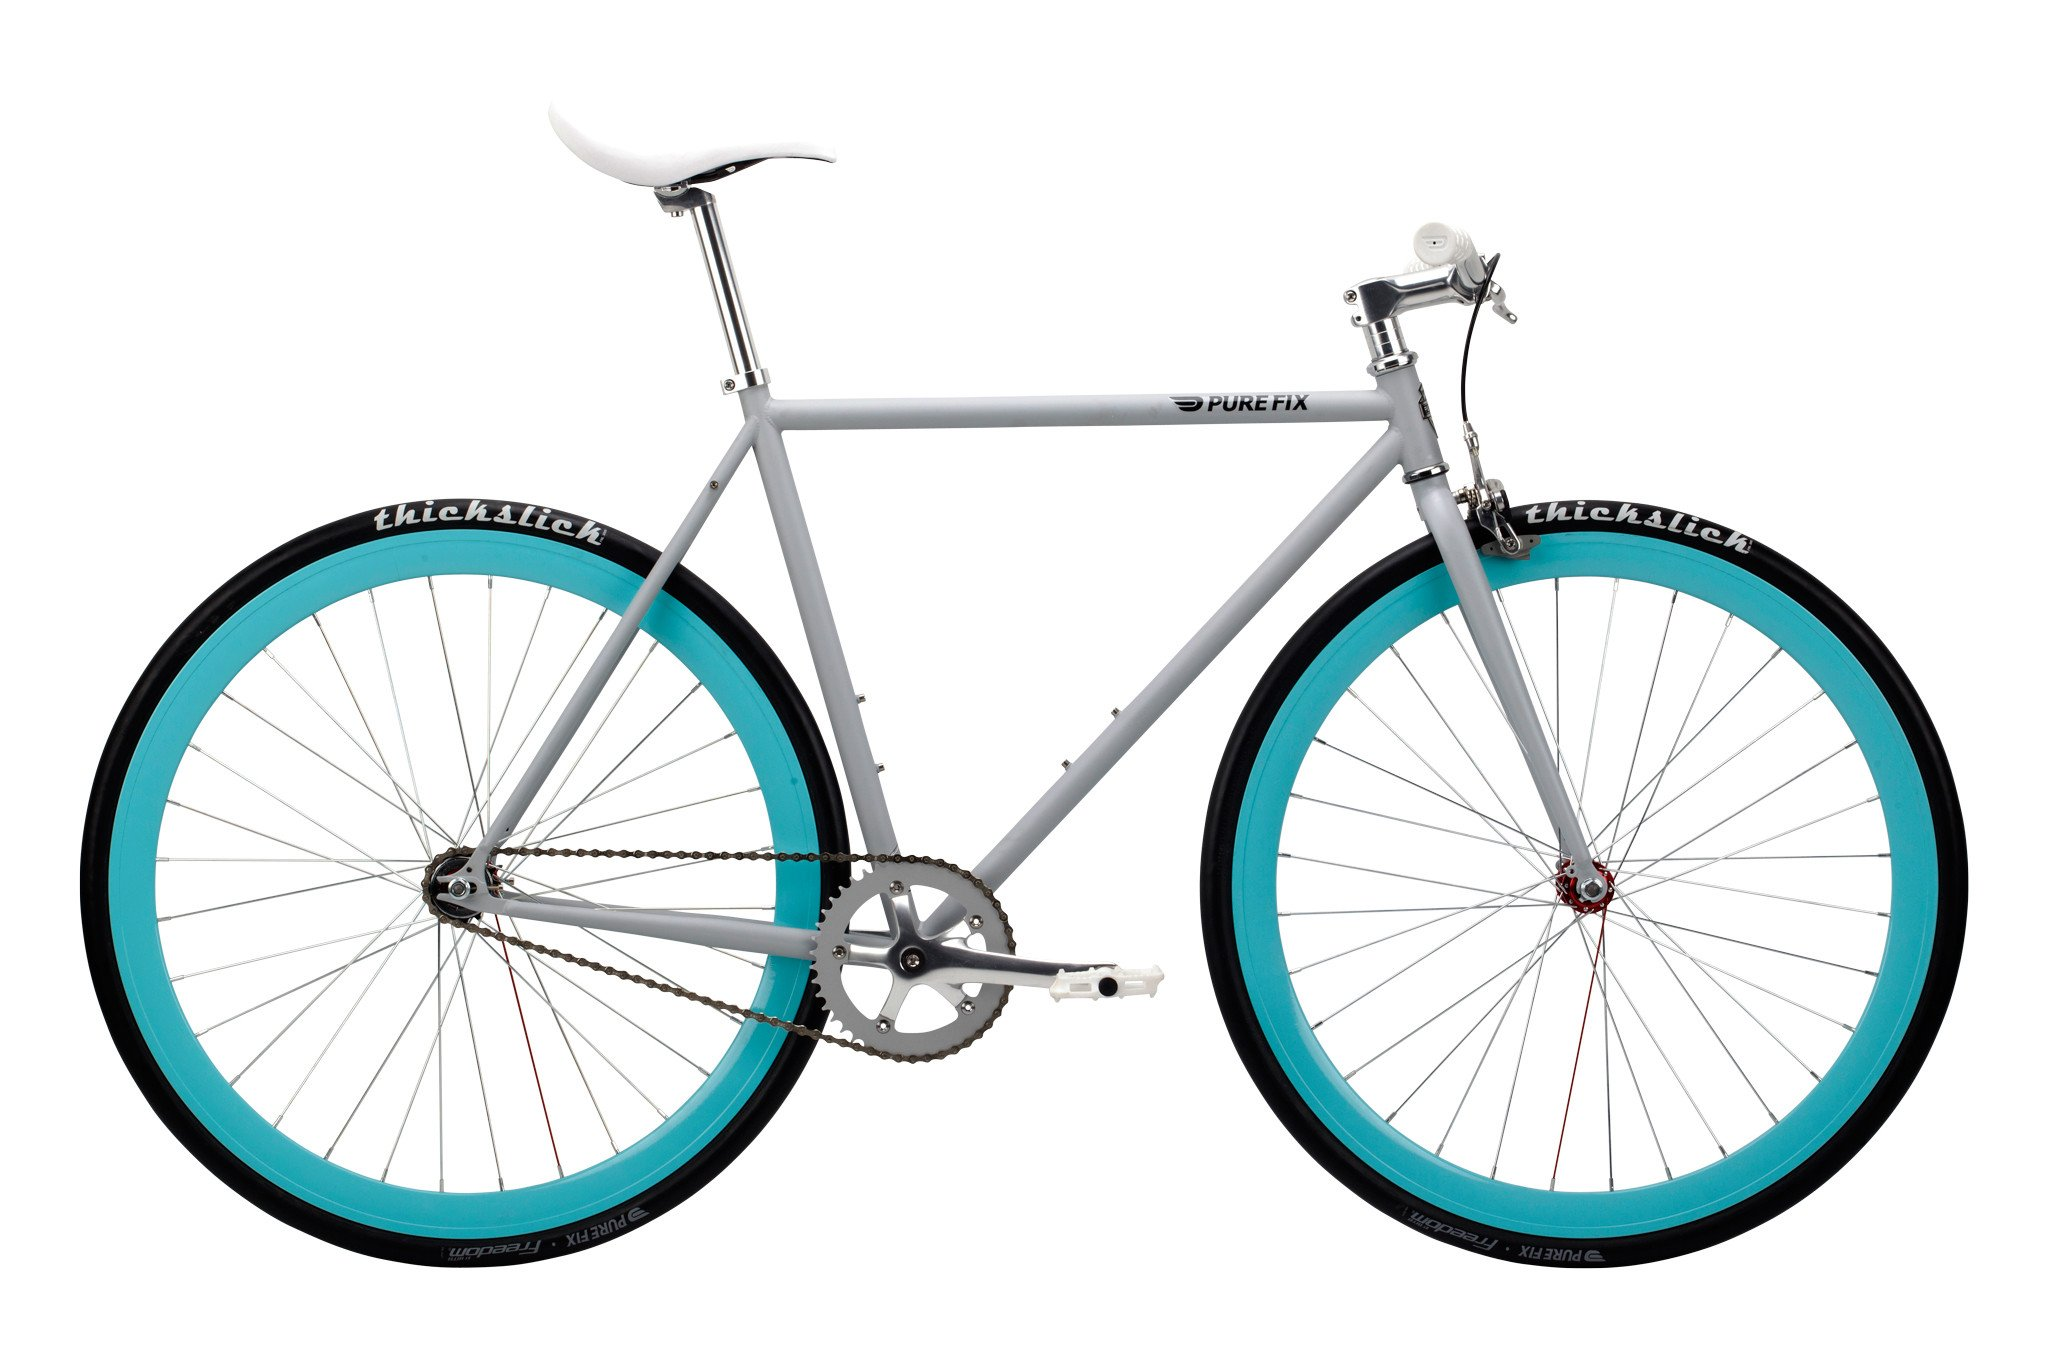 BICICLETA FIXED PUREFIX ORIGINAL THE DELTA XS 47cm